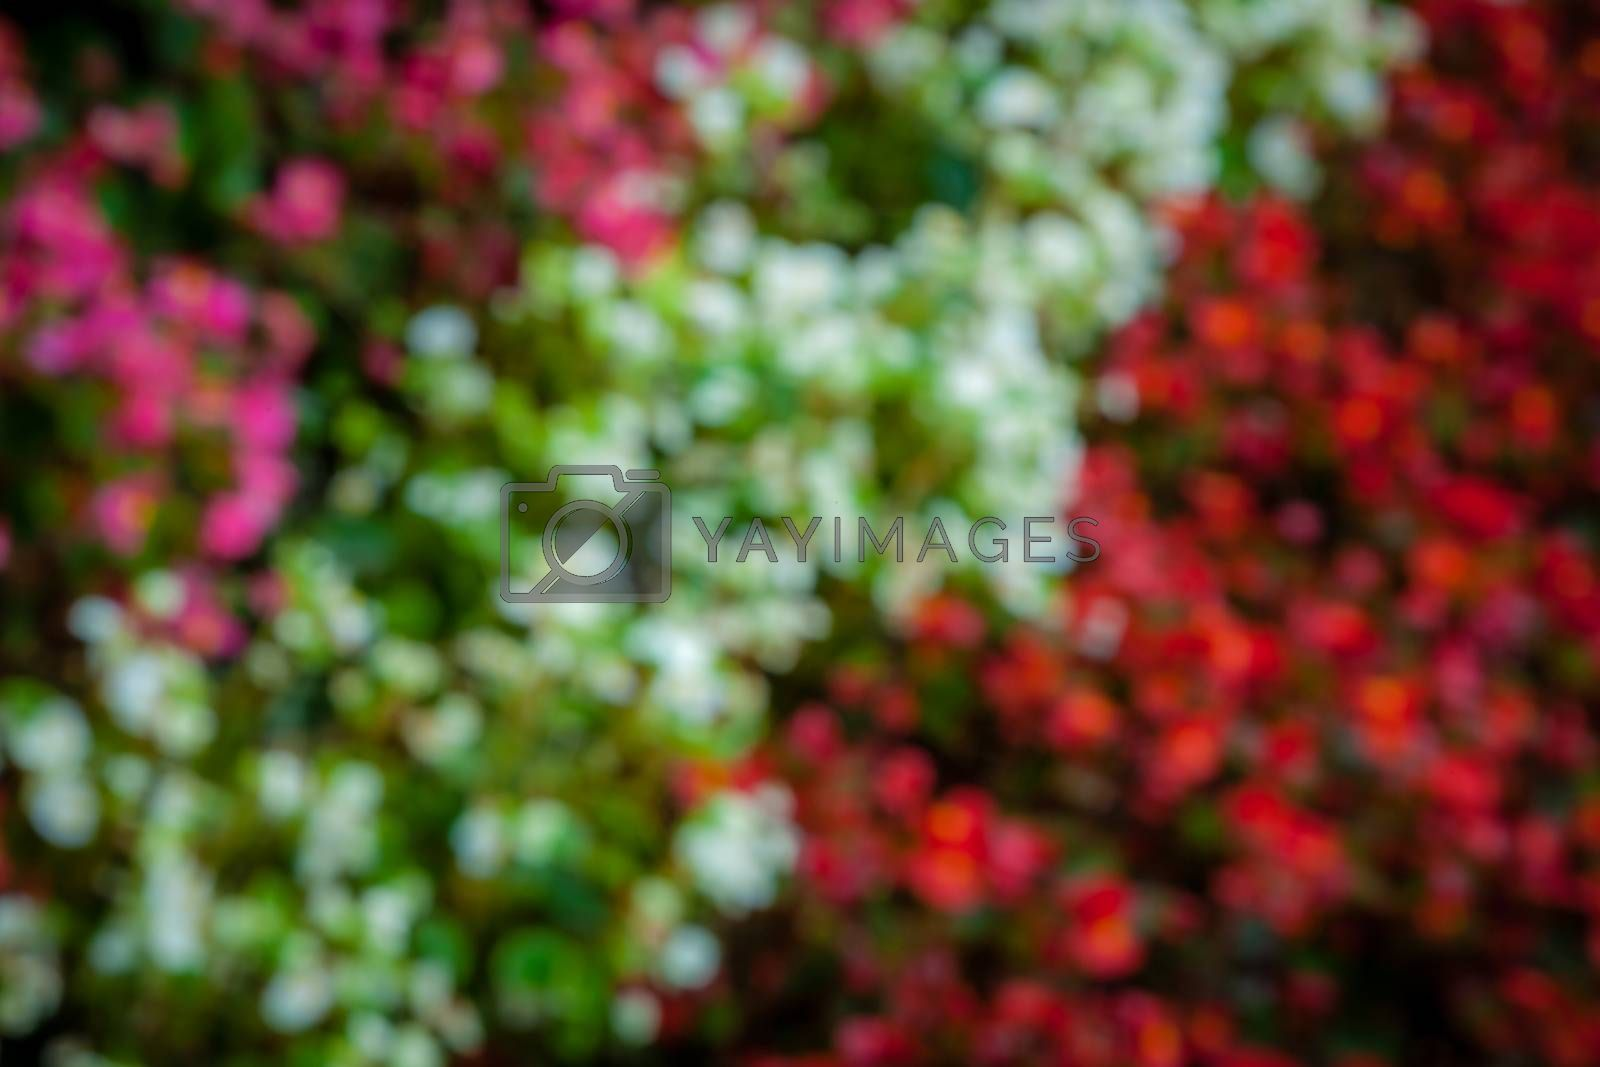 Abstract photo of multicoloured flowers on the ground in the park in spring